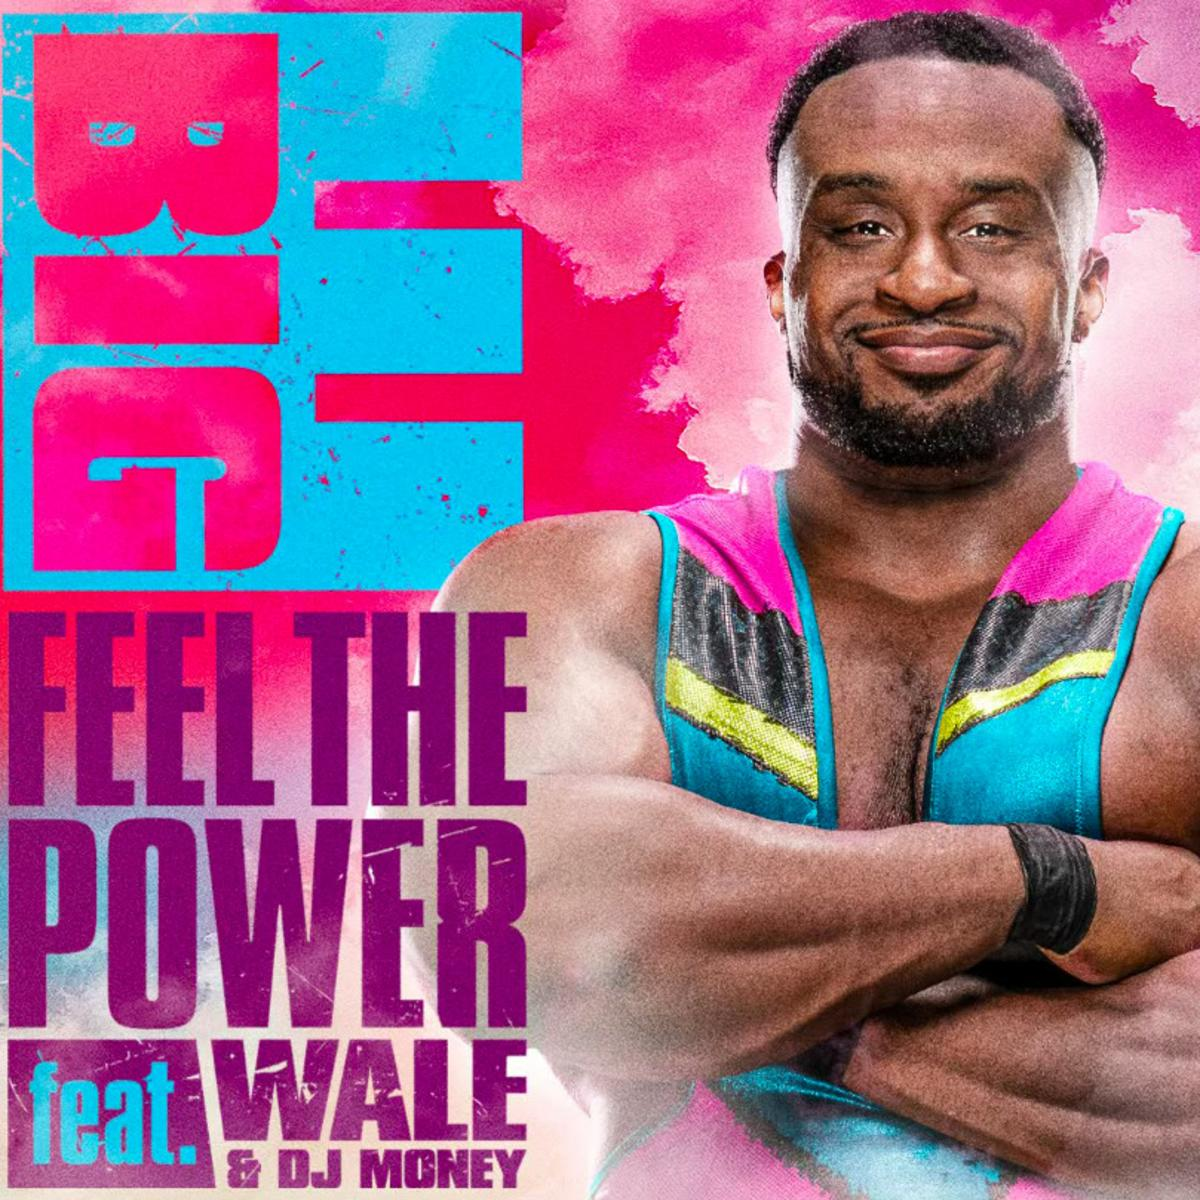 Big E Feel The Power Mp3 Download